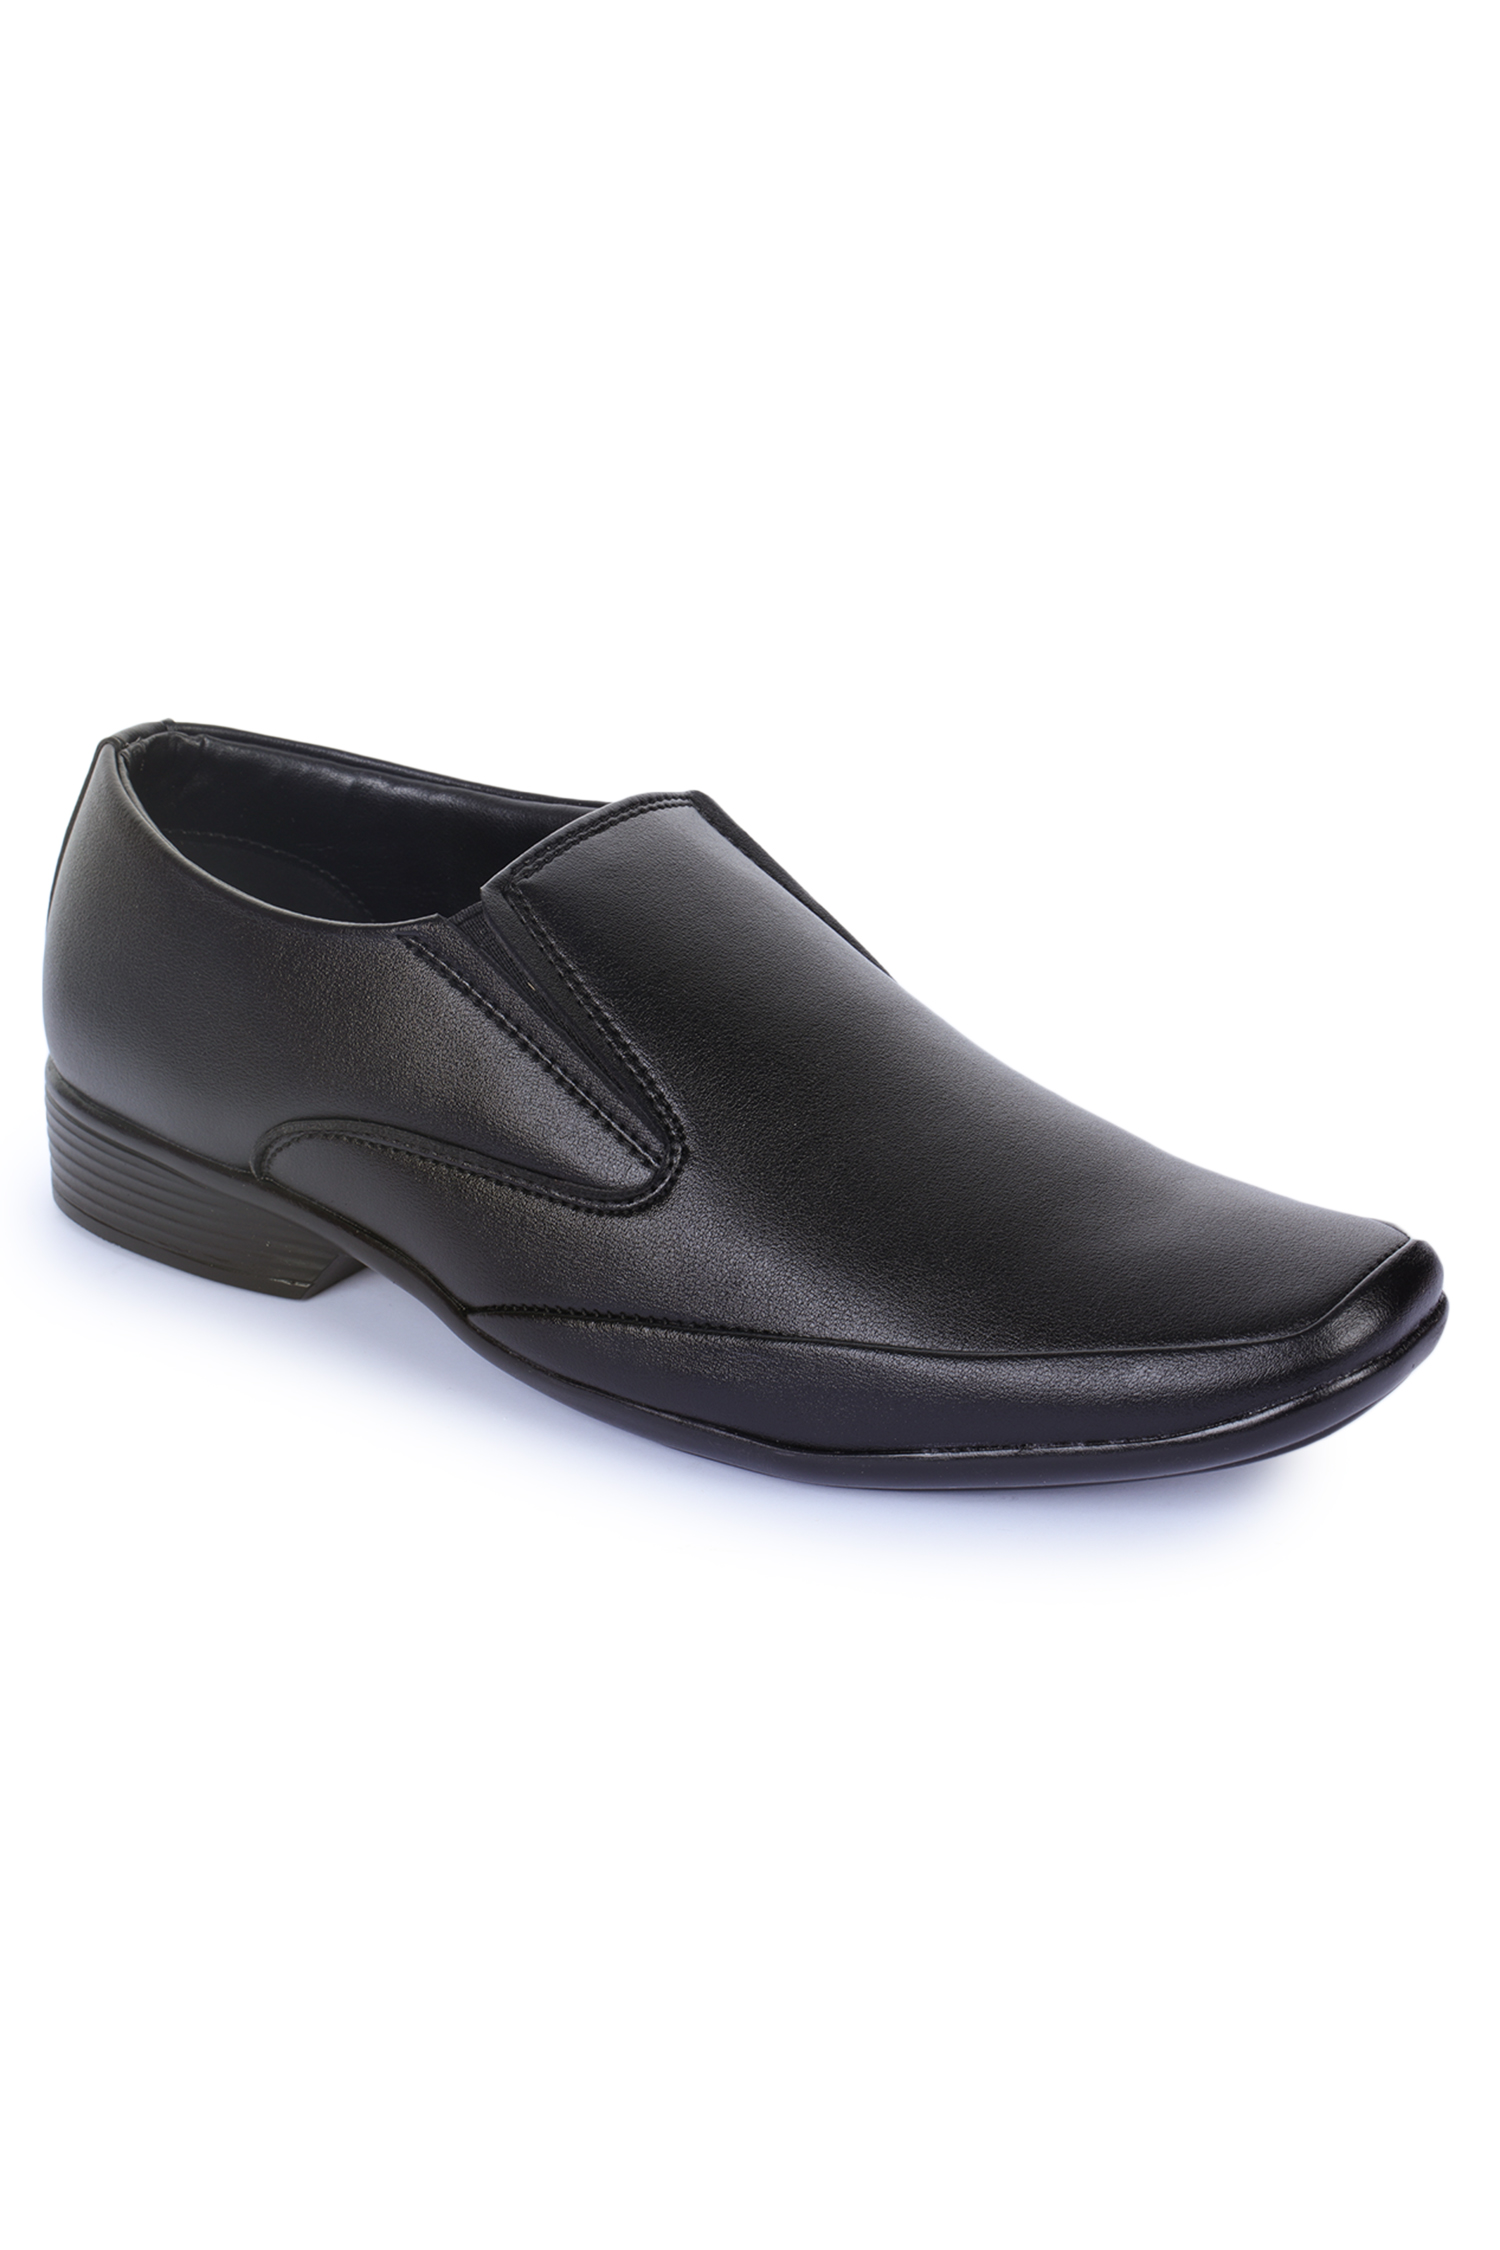 Liberty   Liberty Fortune Black Formal Oxfords Shoes A4-27_Black For - Men